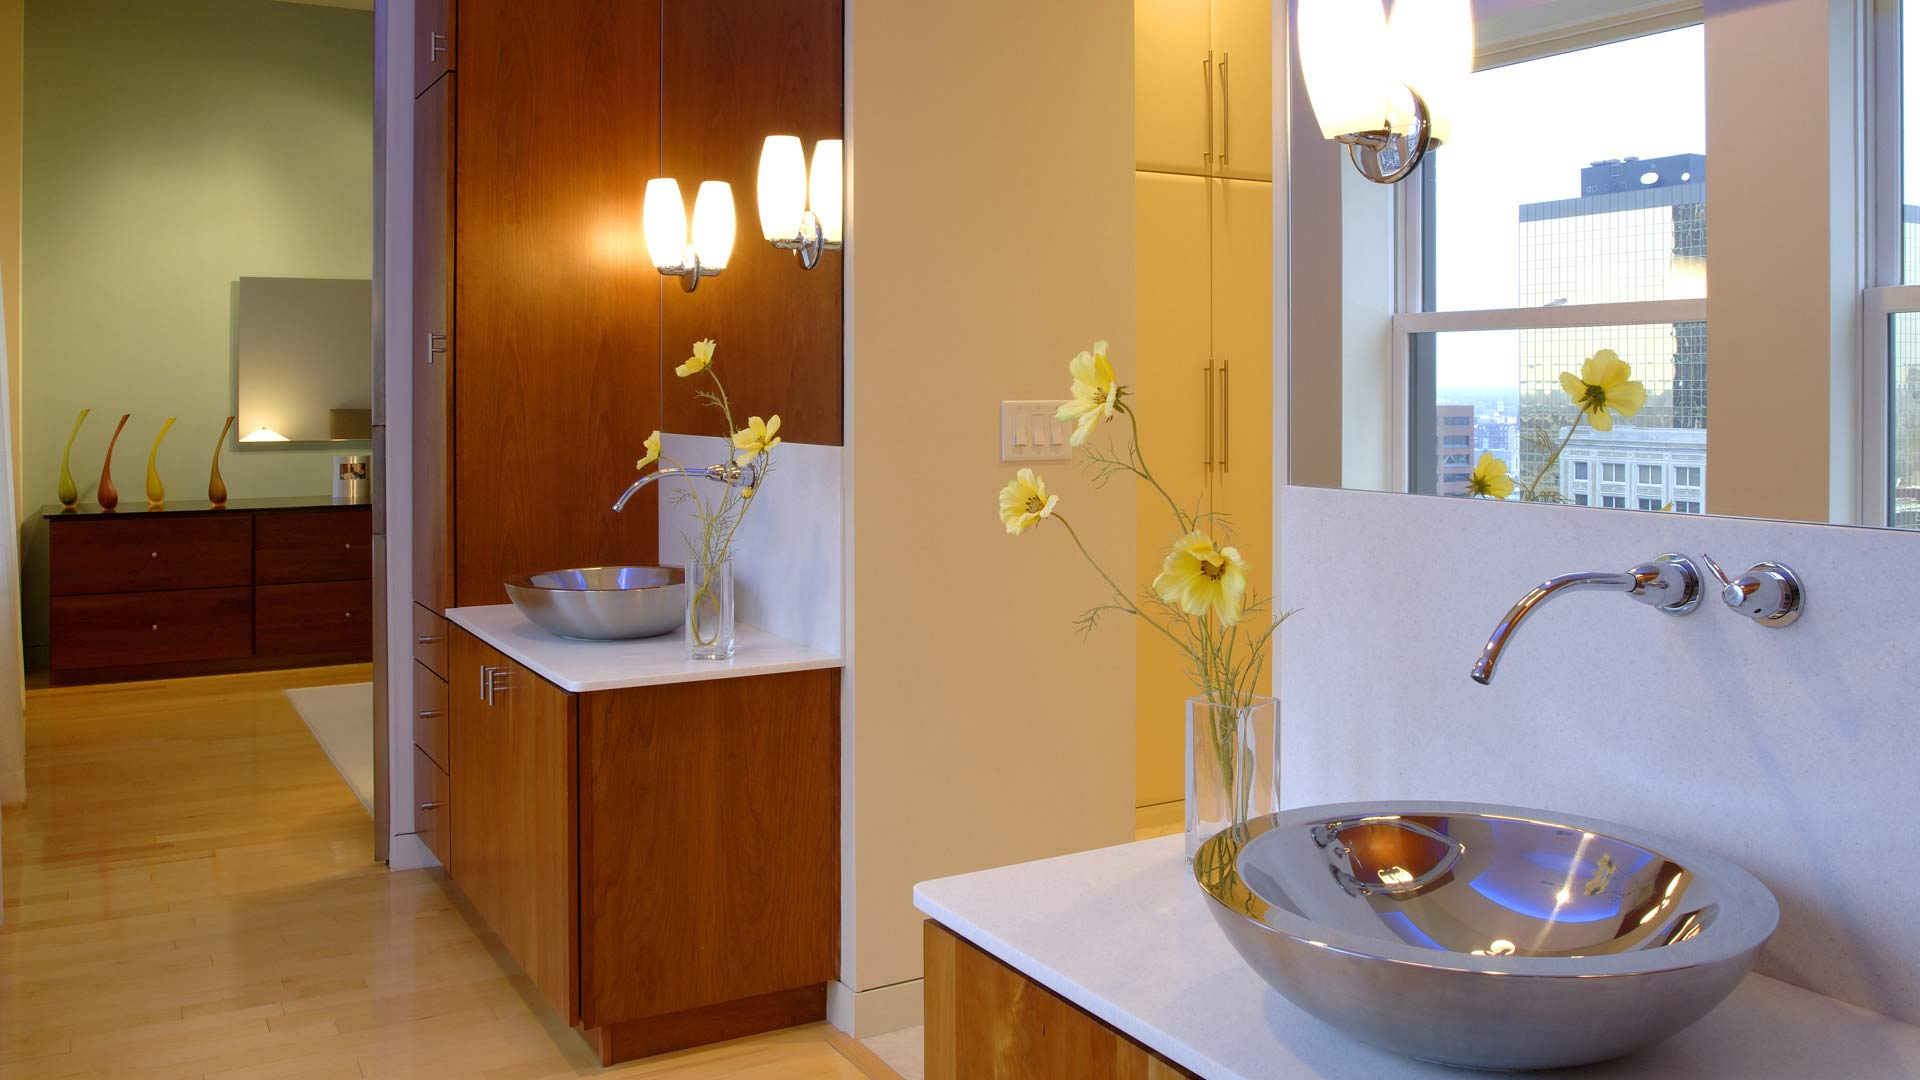 Downtown Urban Modern Penthouse - Master Bathroom Tandem Vanities - HAUS Architecture, Christopher Short, Indianapolis Architect